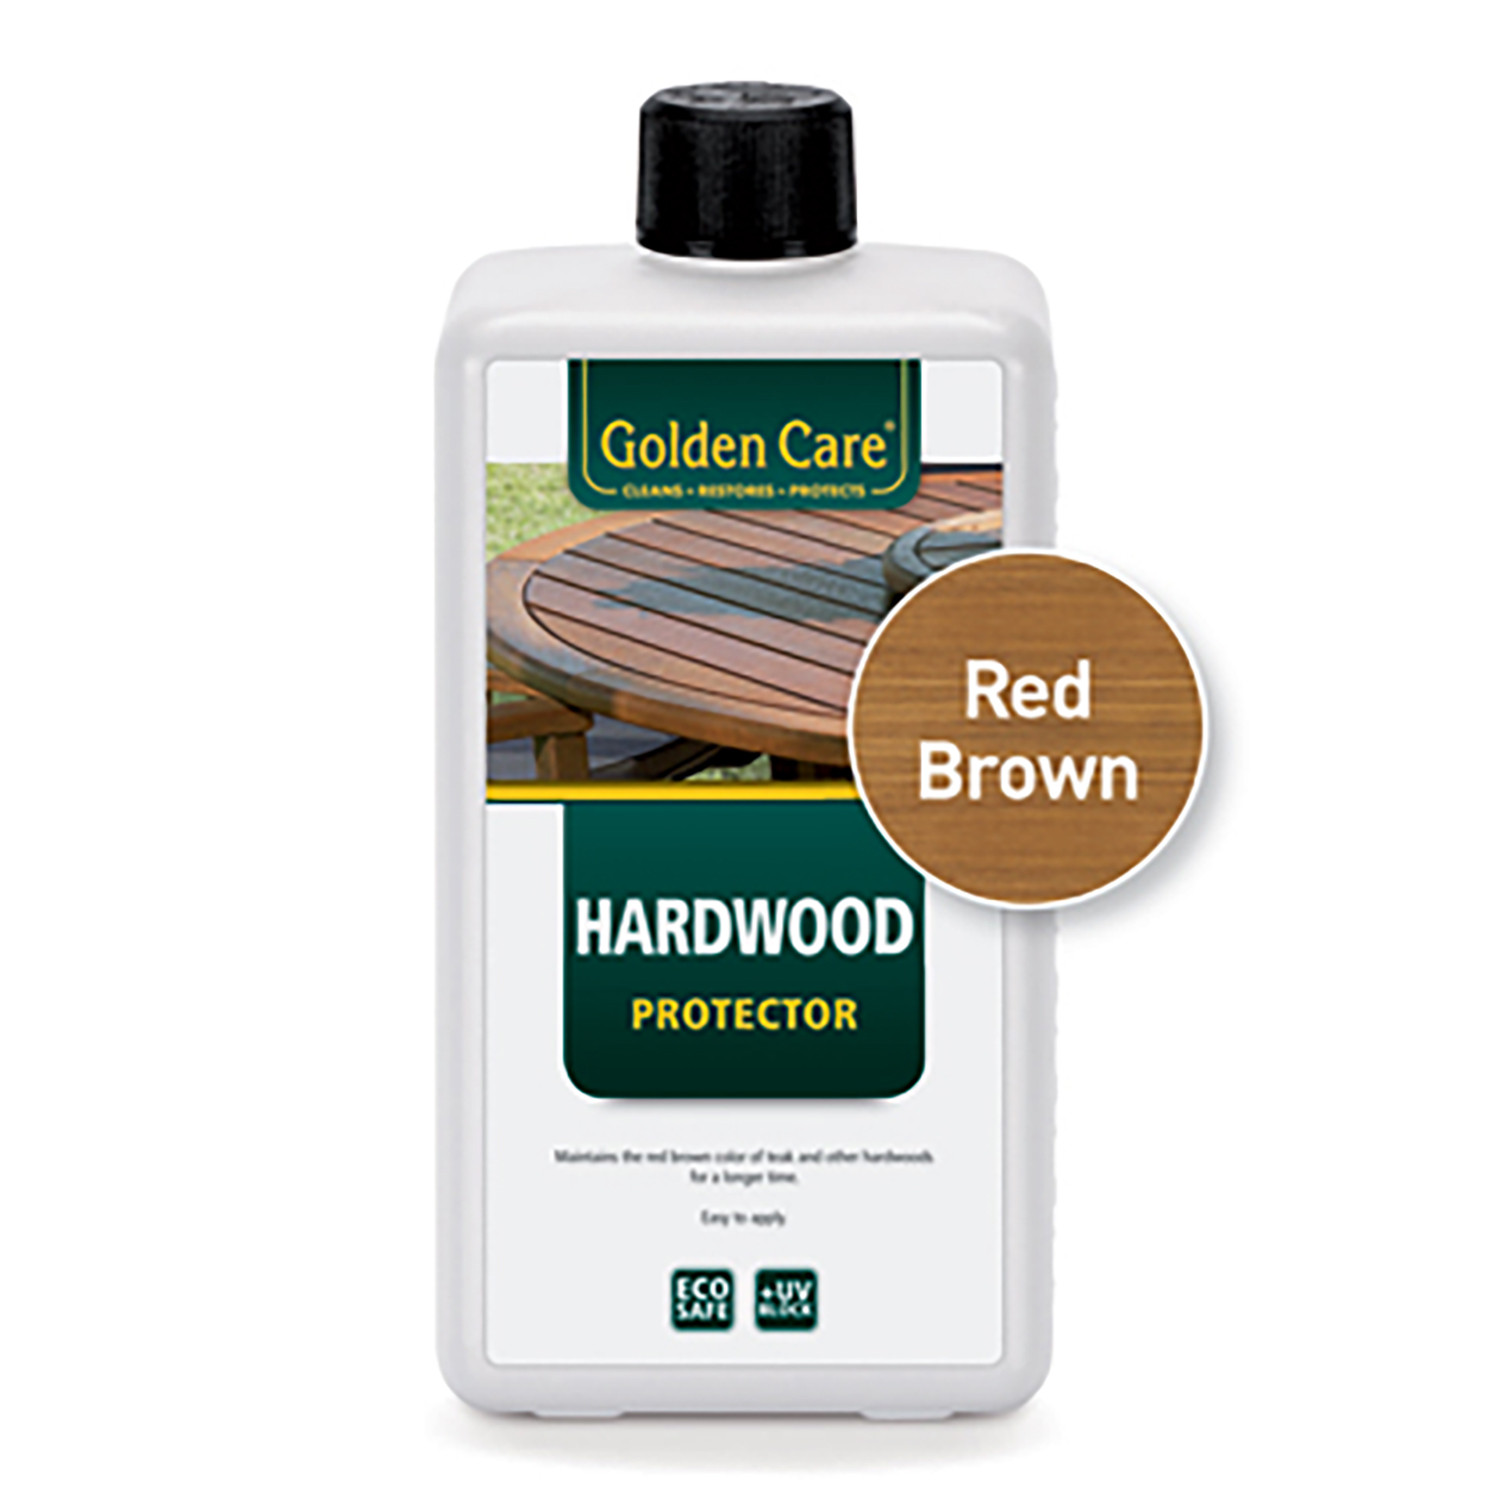 Hardwood Protector red brown